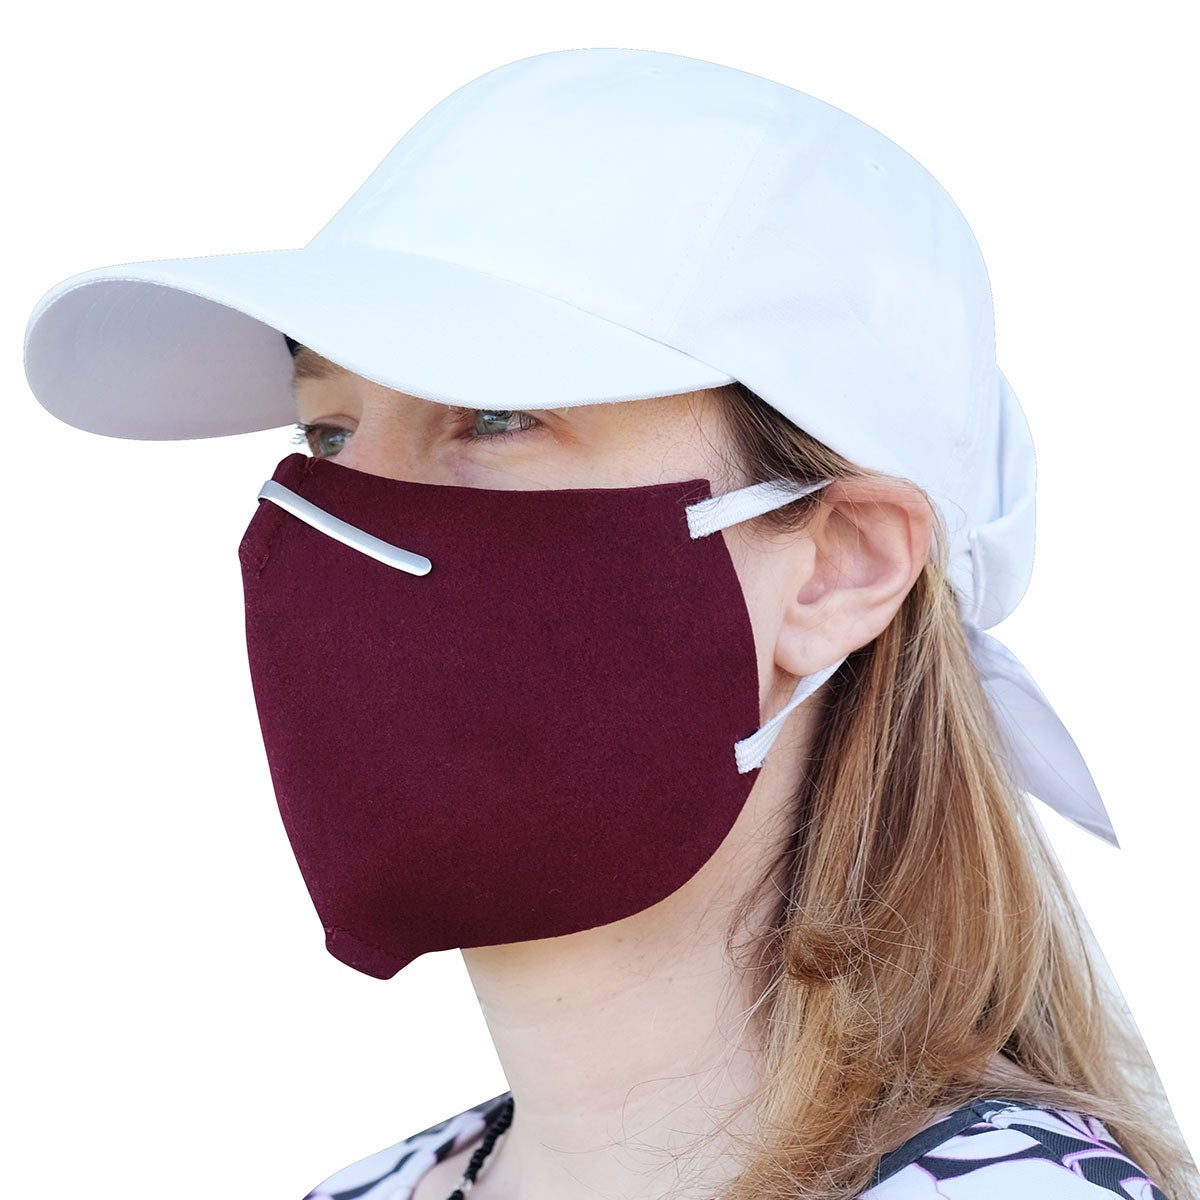 Bollman Hat Company Washed Protective Wool Face Mask - 4 Pack in Assorted